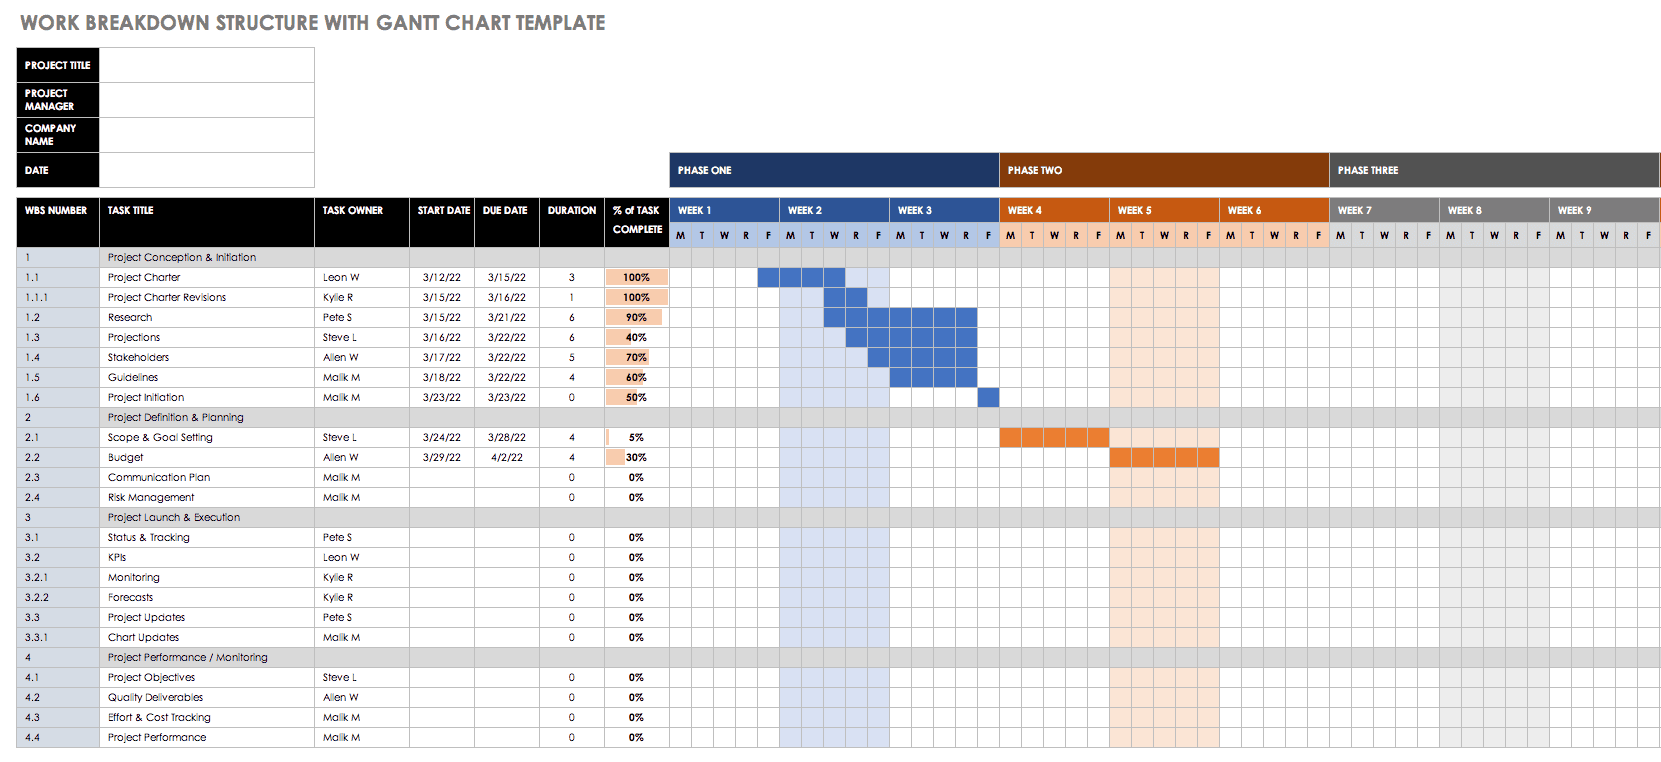 WBS With Gantt Chart Template